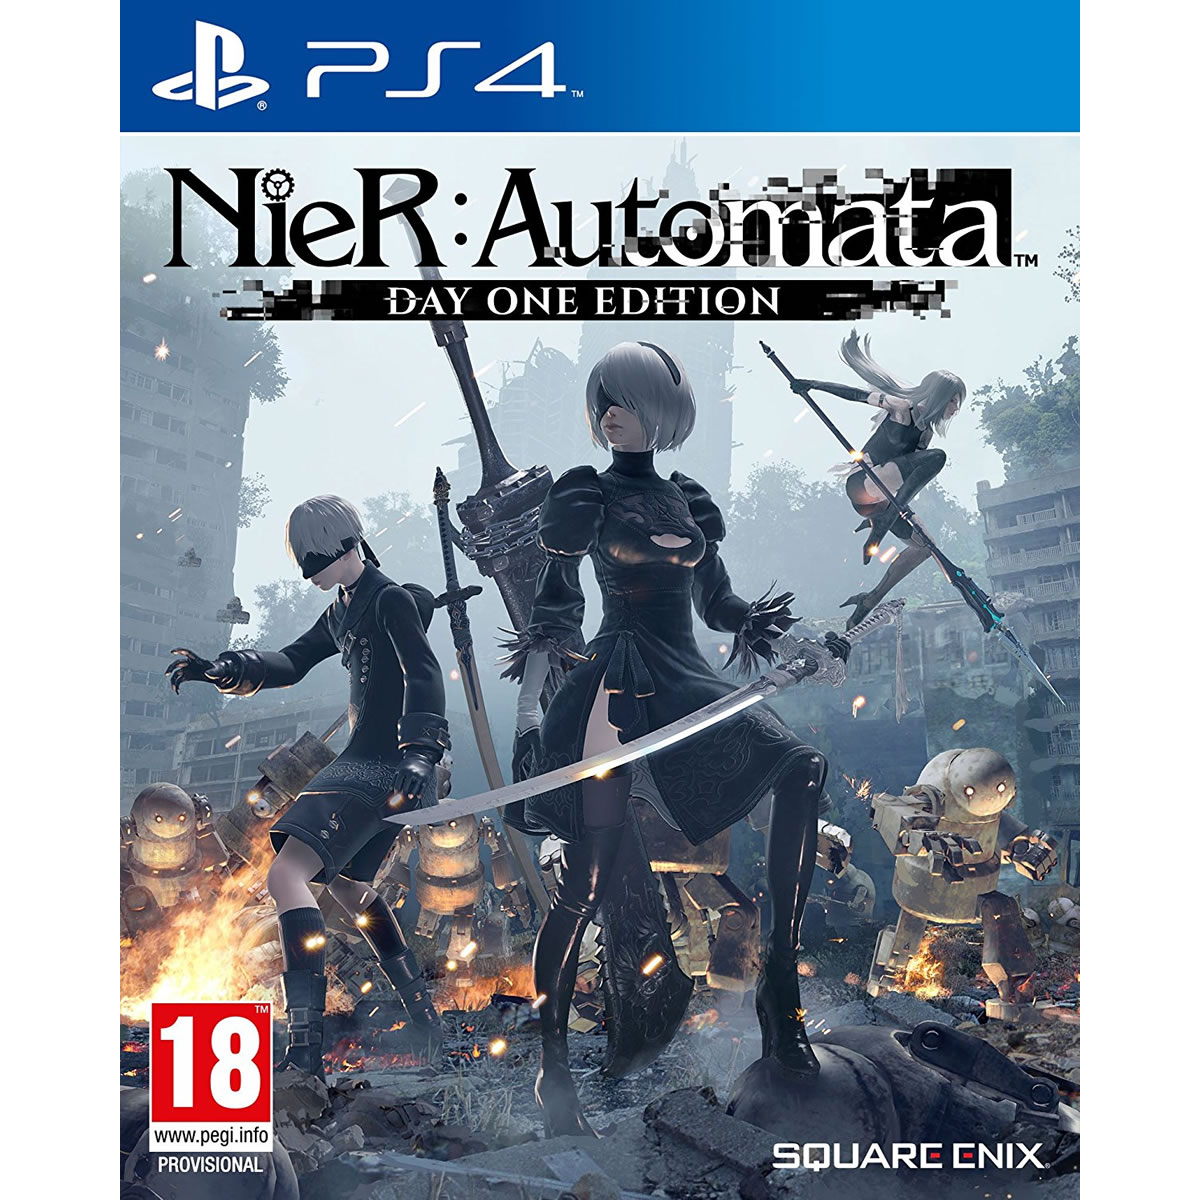 NIER AUTOMATA - DAY ONE EDITION (PS4)